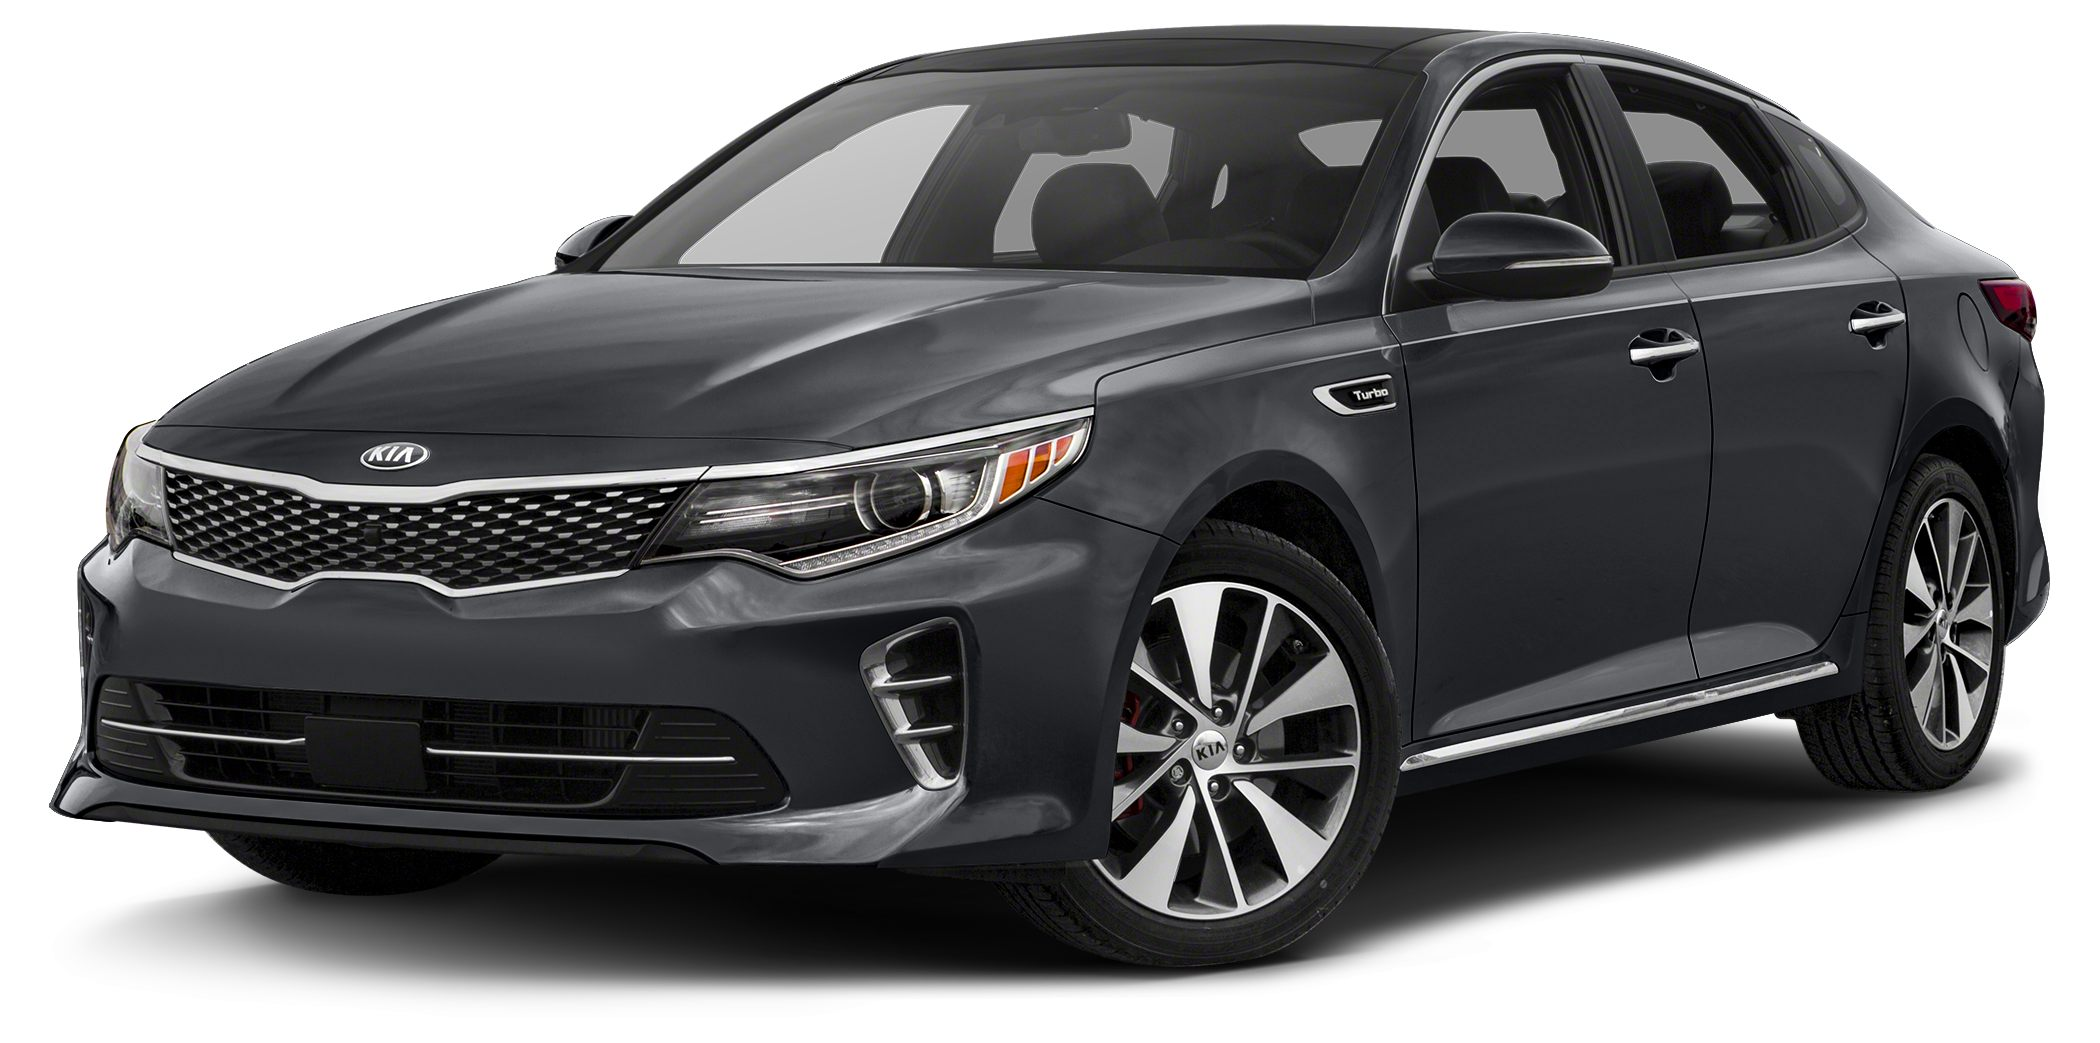 2018 Kia Optima SX Turbo Miles 8Color Platinum Graphite Stock K16892 VIN 5XXGW4L26JG196527